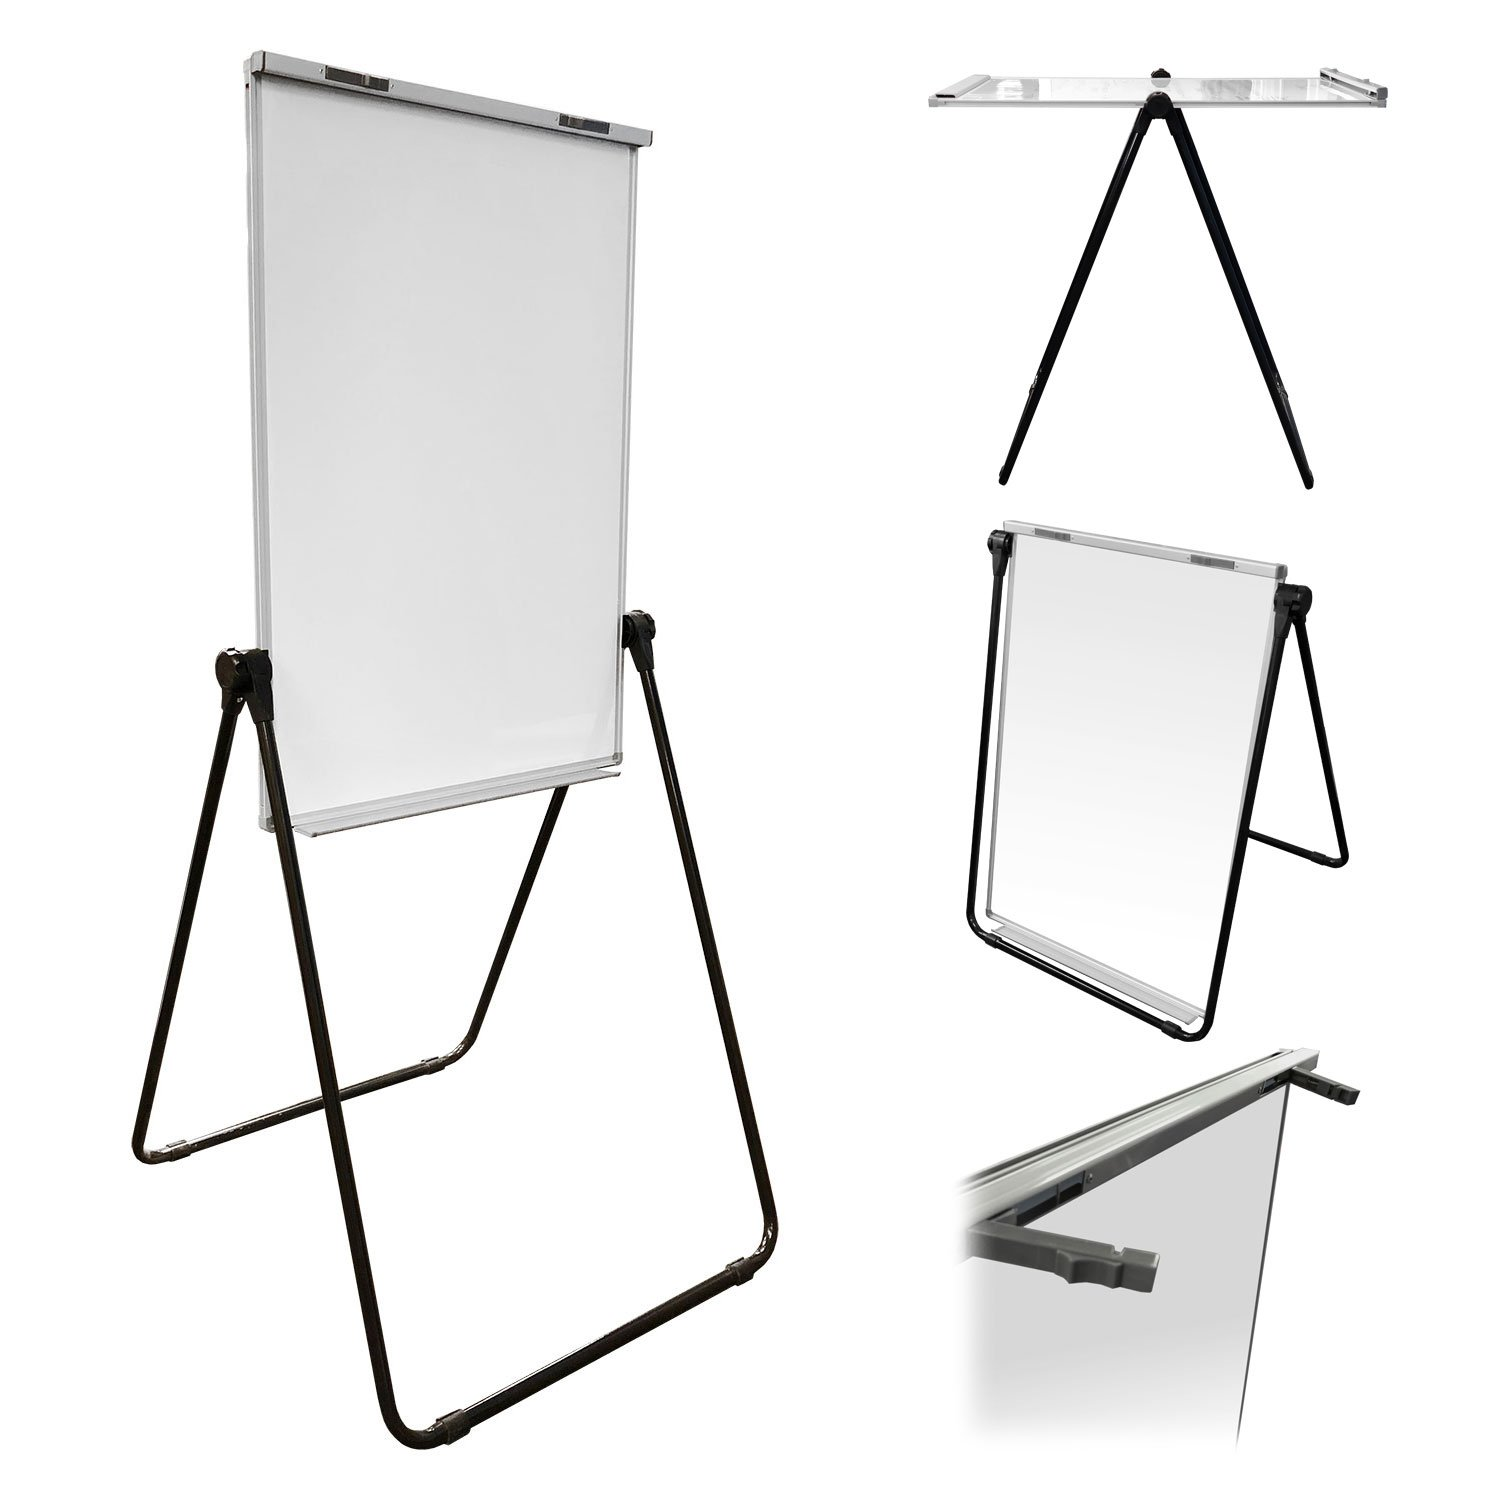 Thornton's Office Supplies Magnetic Double Sided Height Adjustable Dry Erase Flipchart Easel Board, 39'' x 27''